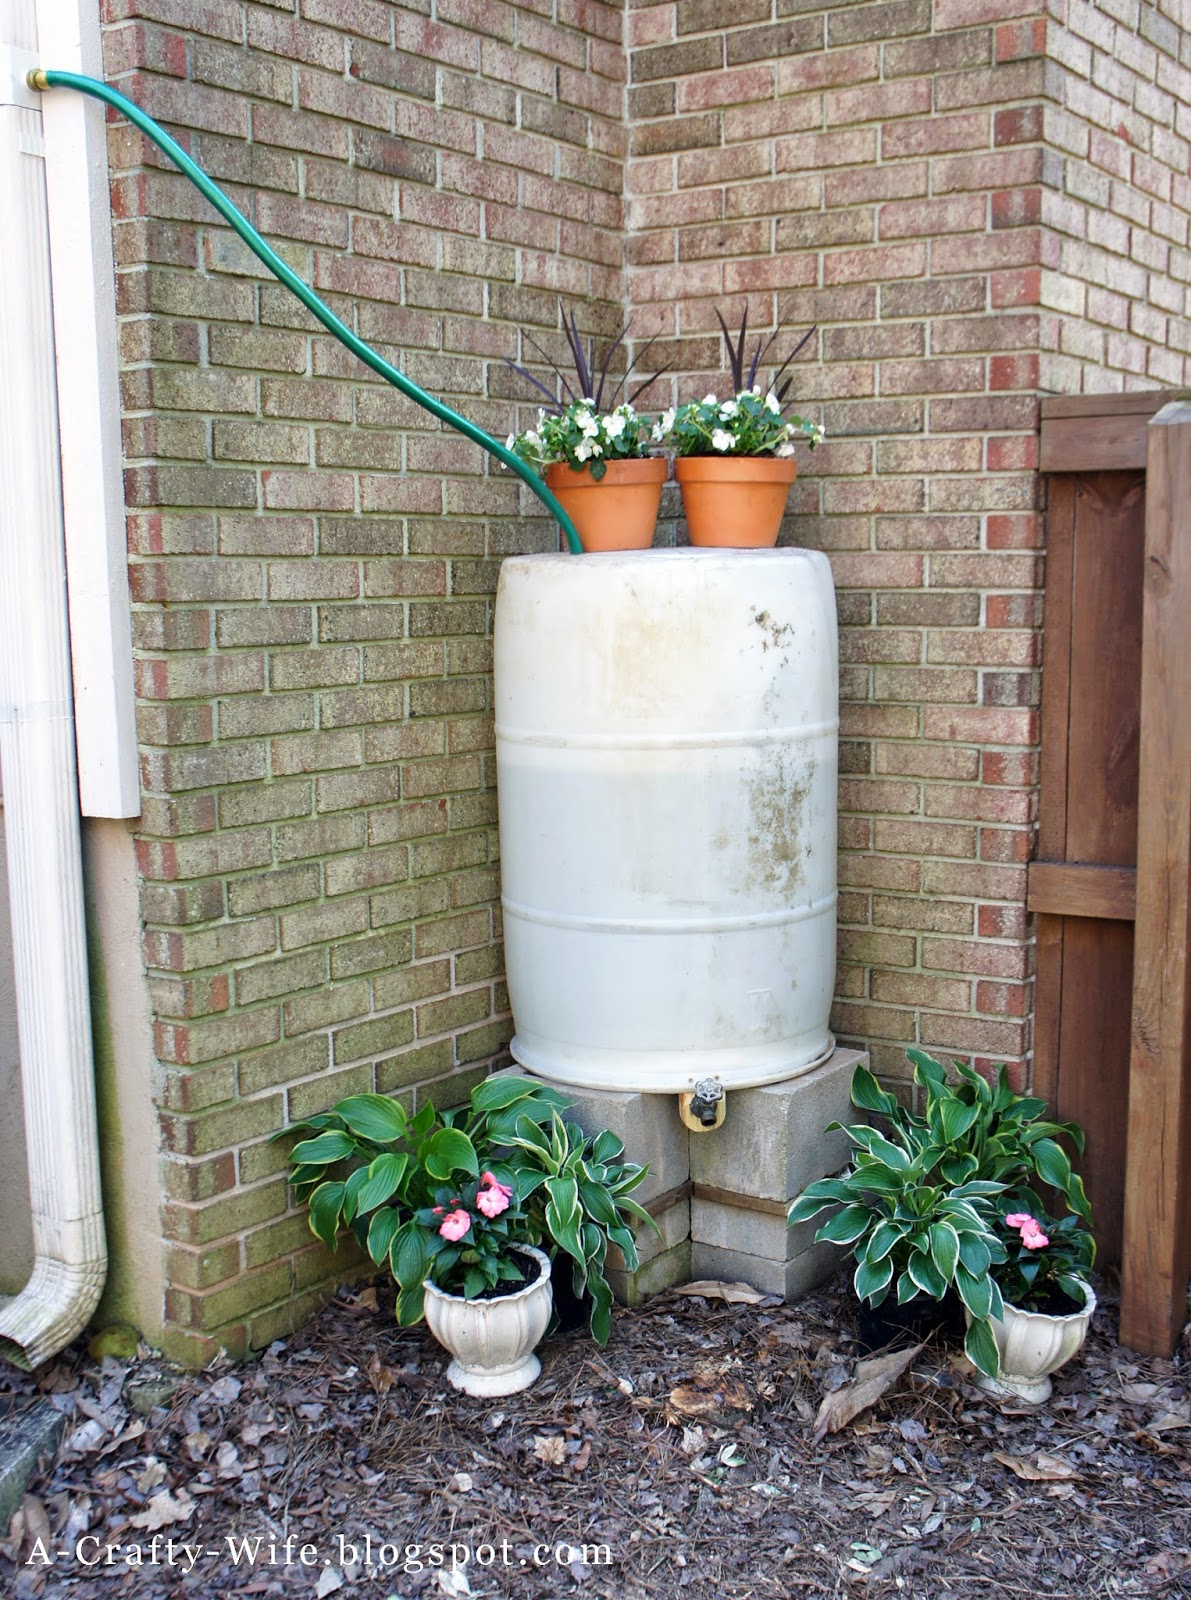 Make your own rain barrel - 2 hour or less project | A Crafty Wife